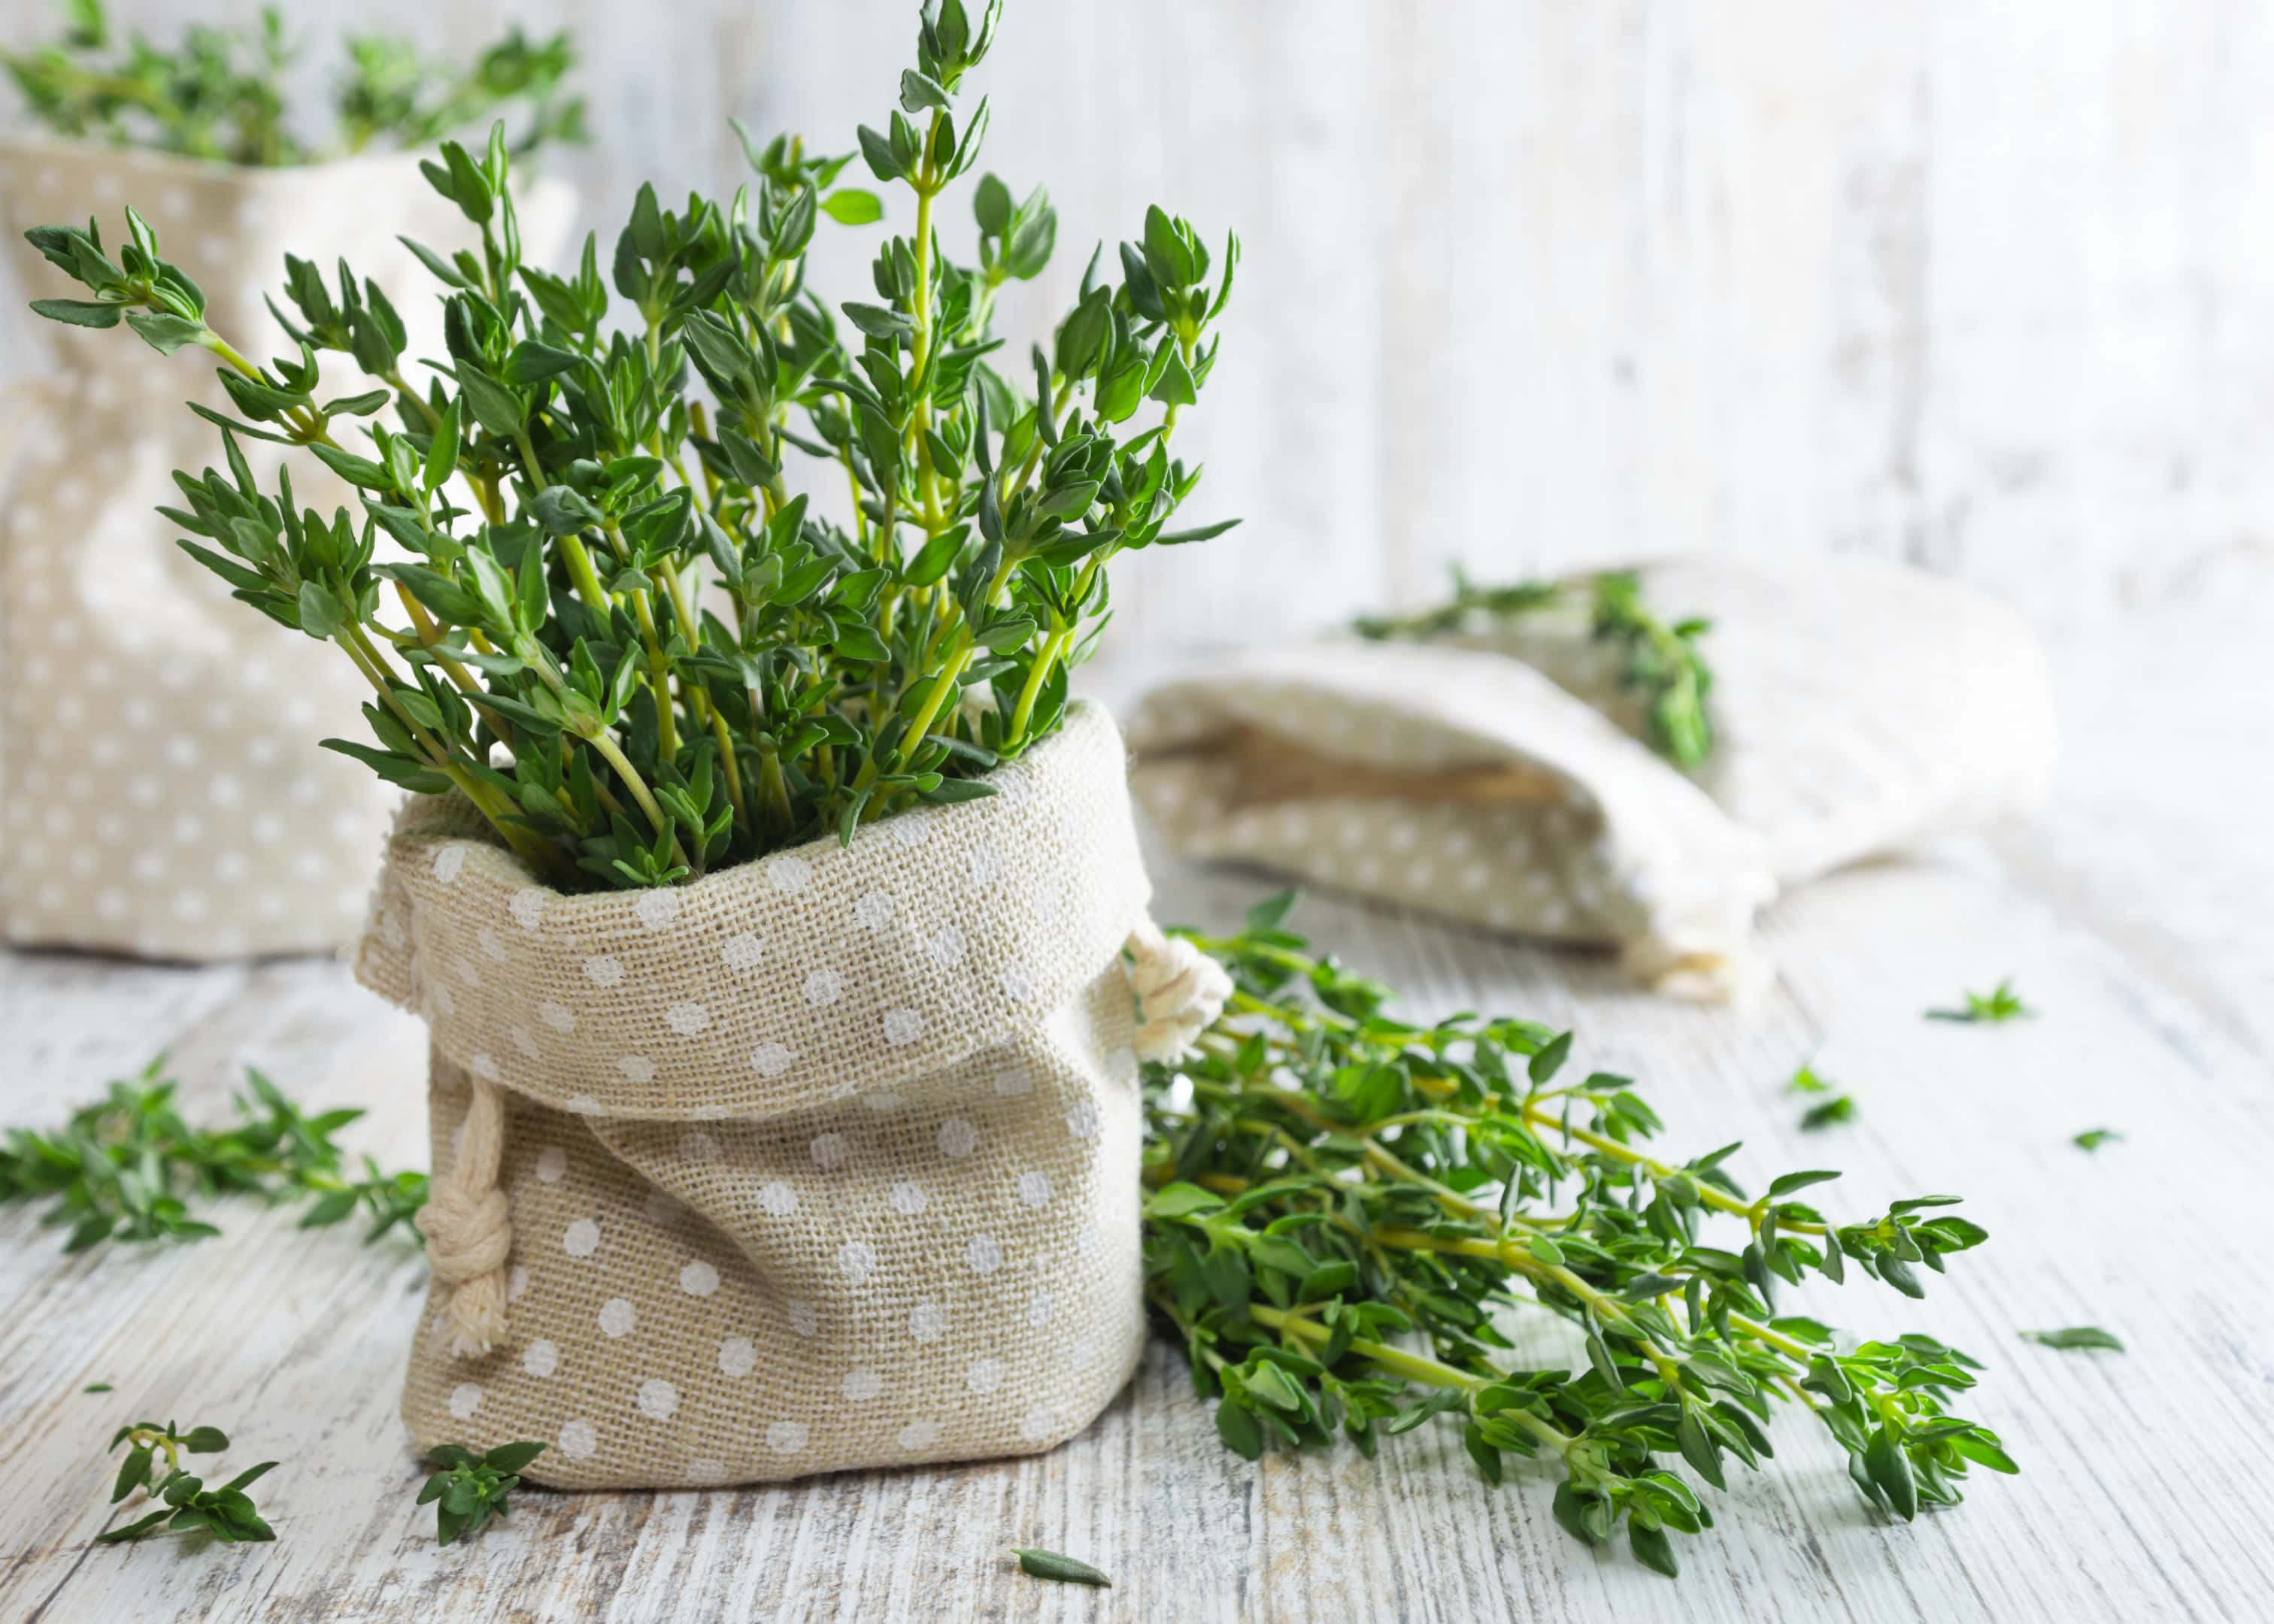 Fresh thyme in pouch on old wooden table